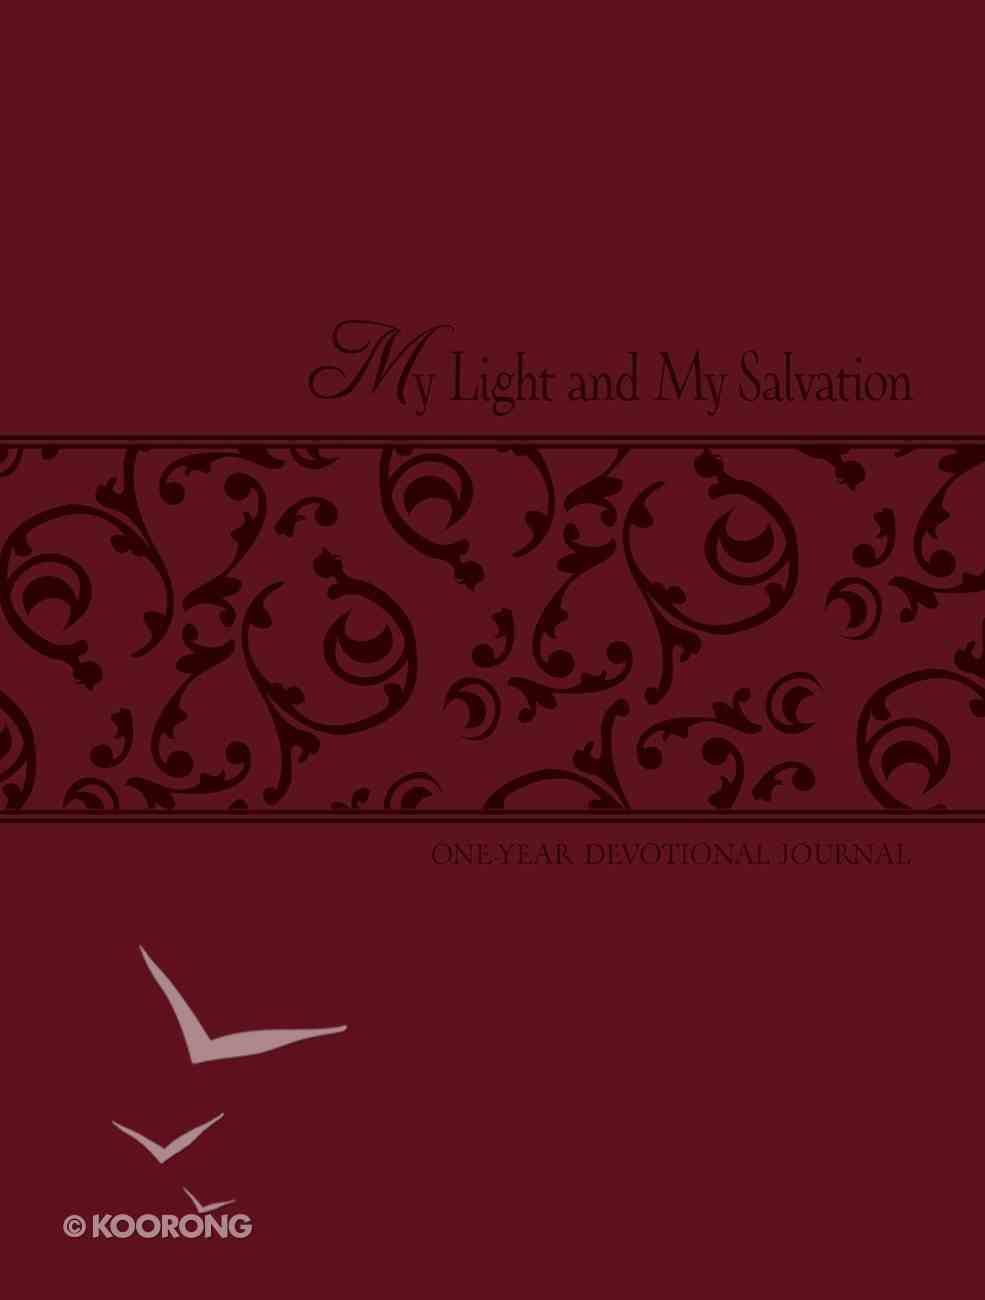 My Light and My Salvation (One Year Devotional Journal) Imitation Leather